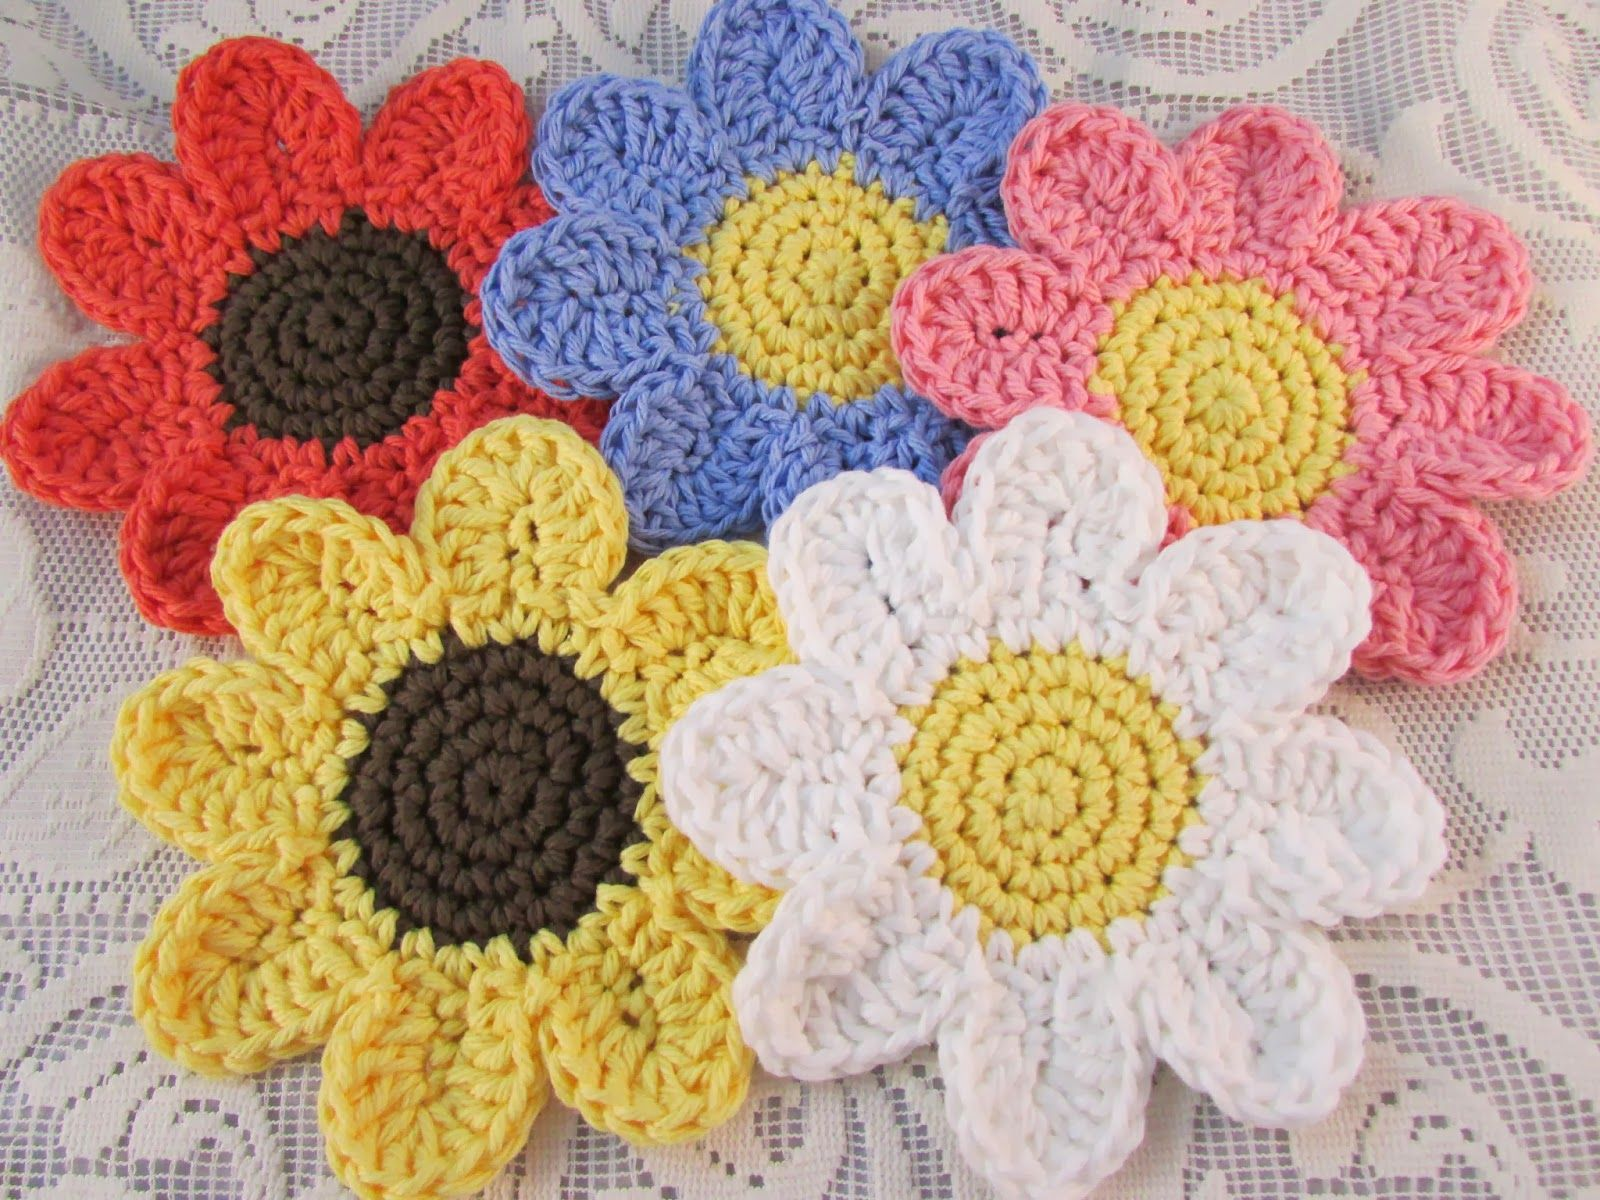 Crocheted daisies and spring fever nancy drew crochets free crocheted daisies and spring fever nancy drew crochets bankloansurffo Images